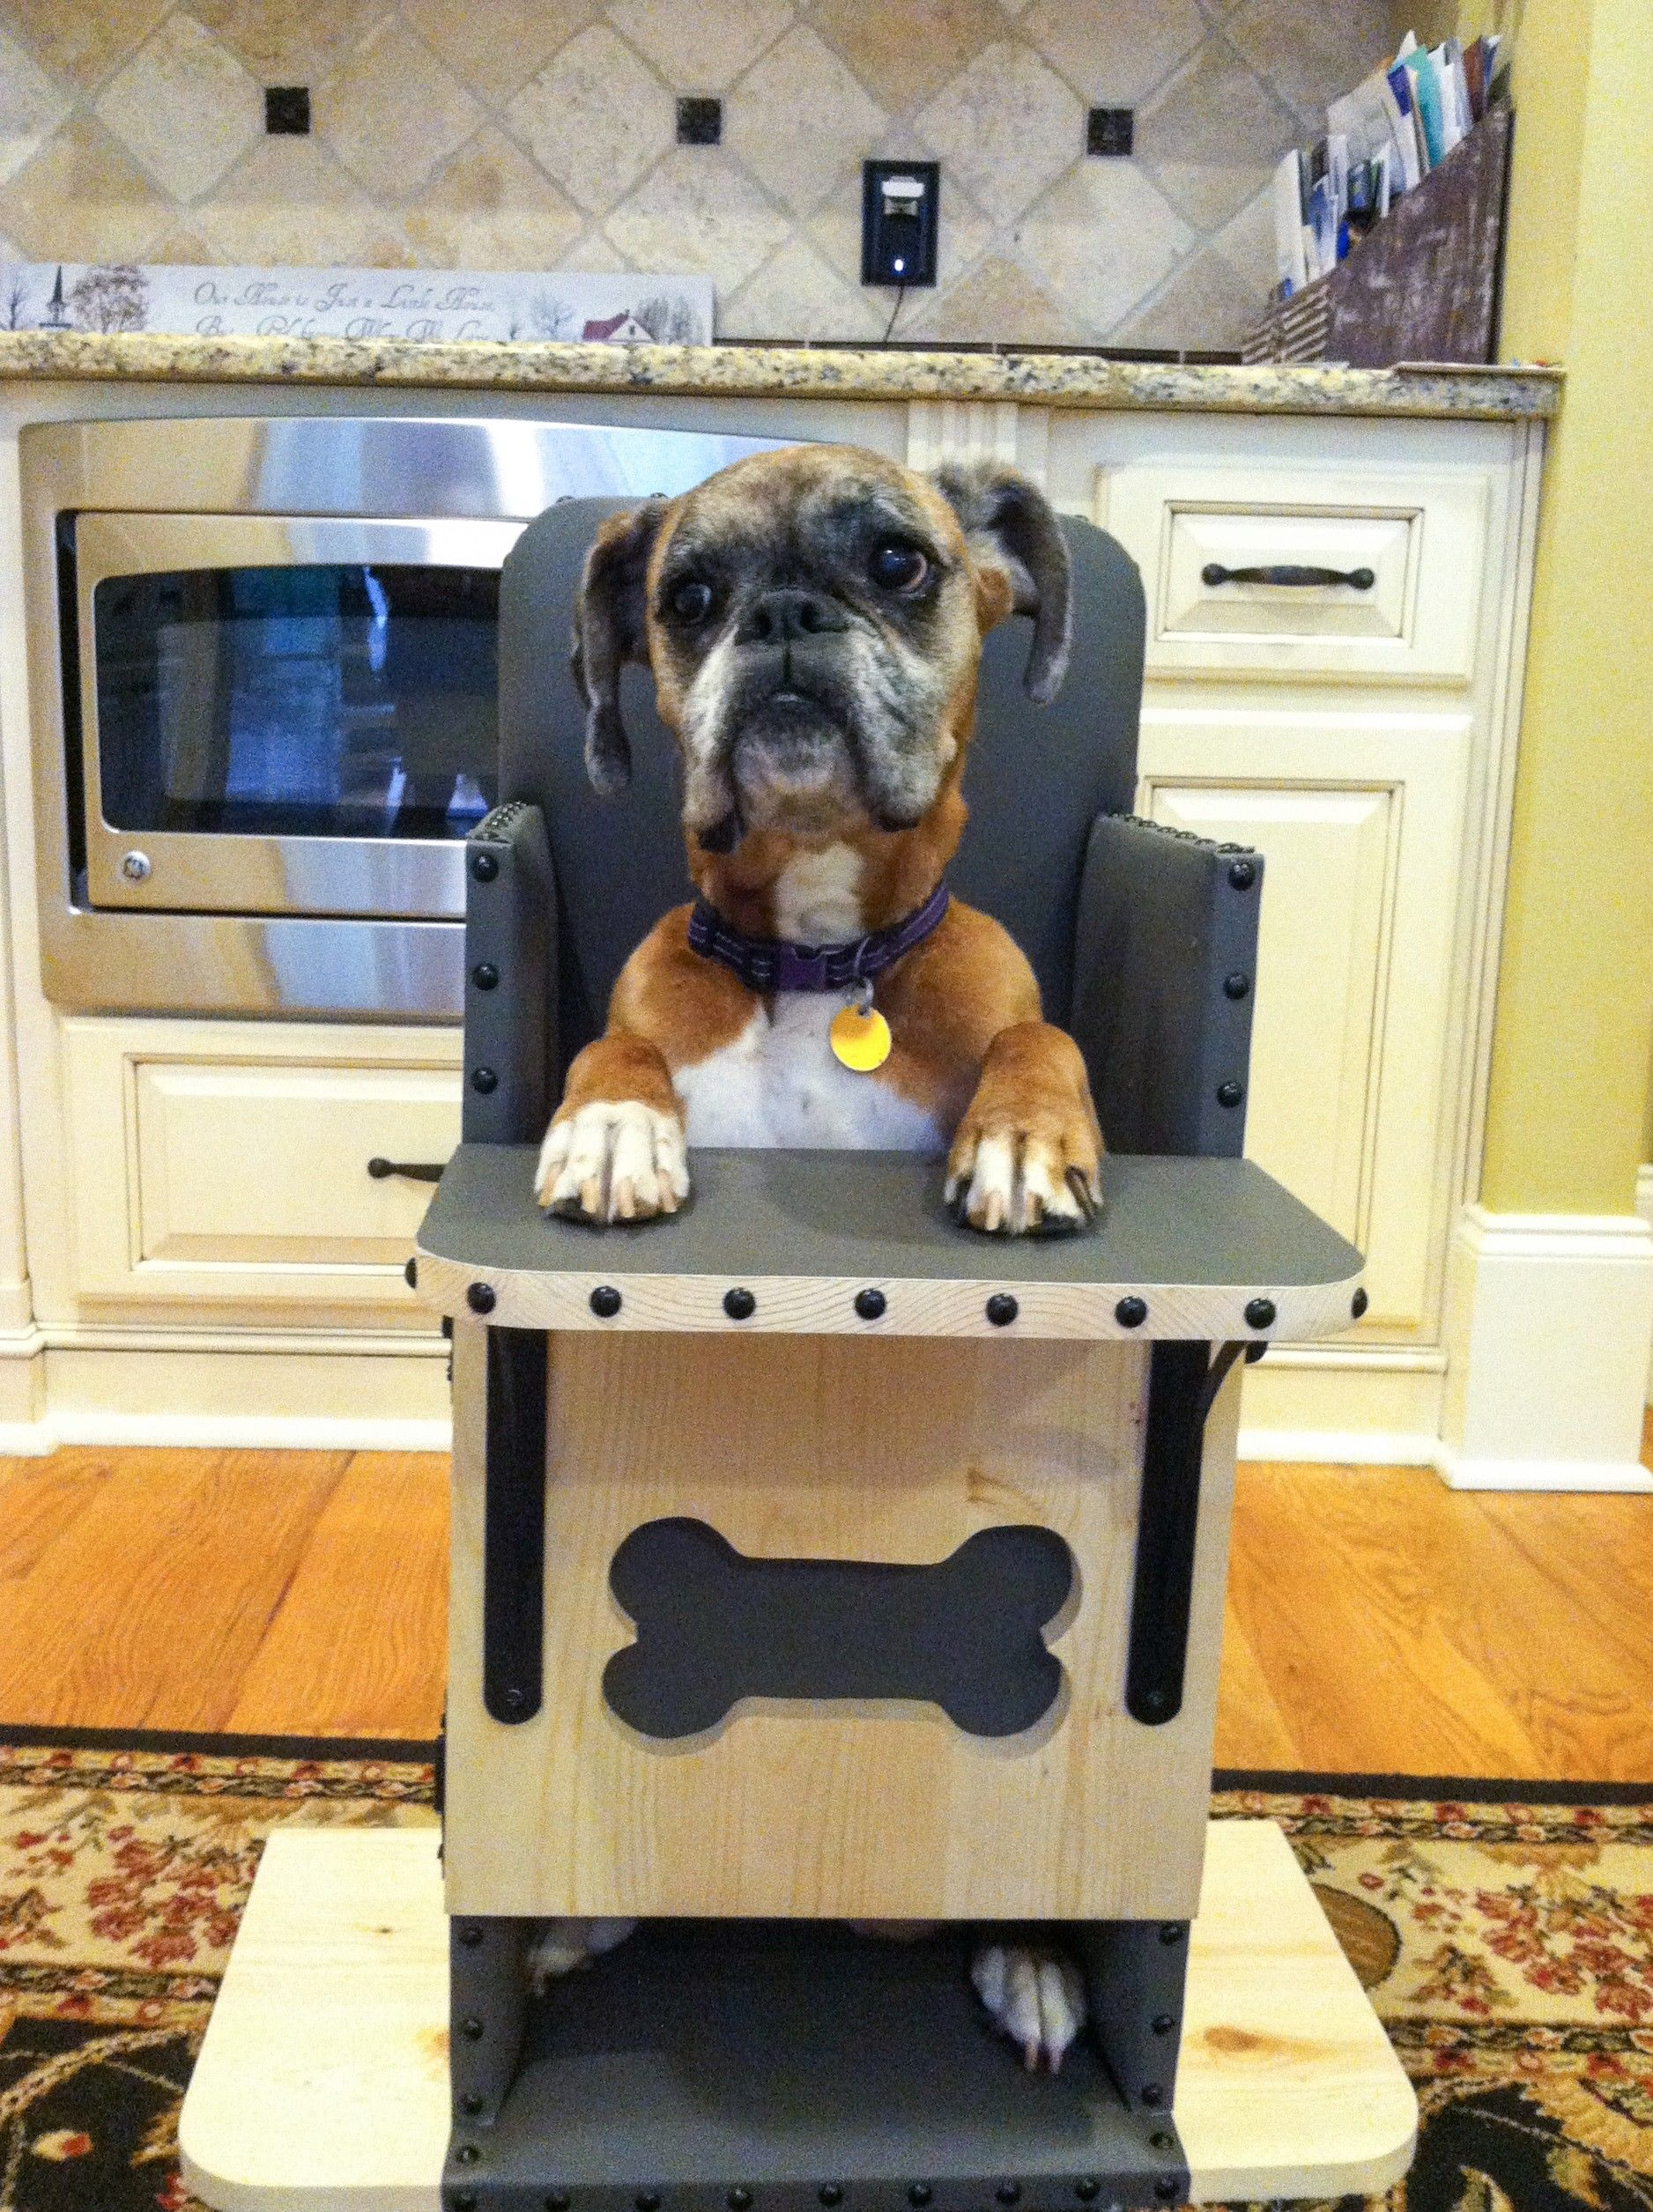 dog high chair spider web target boxer energetic and funny barking fur babies